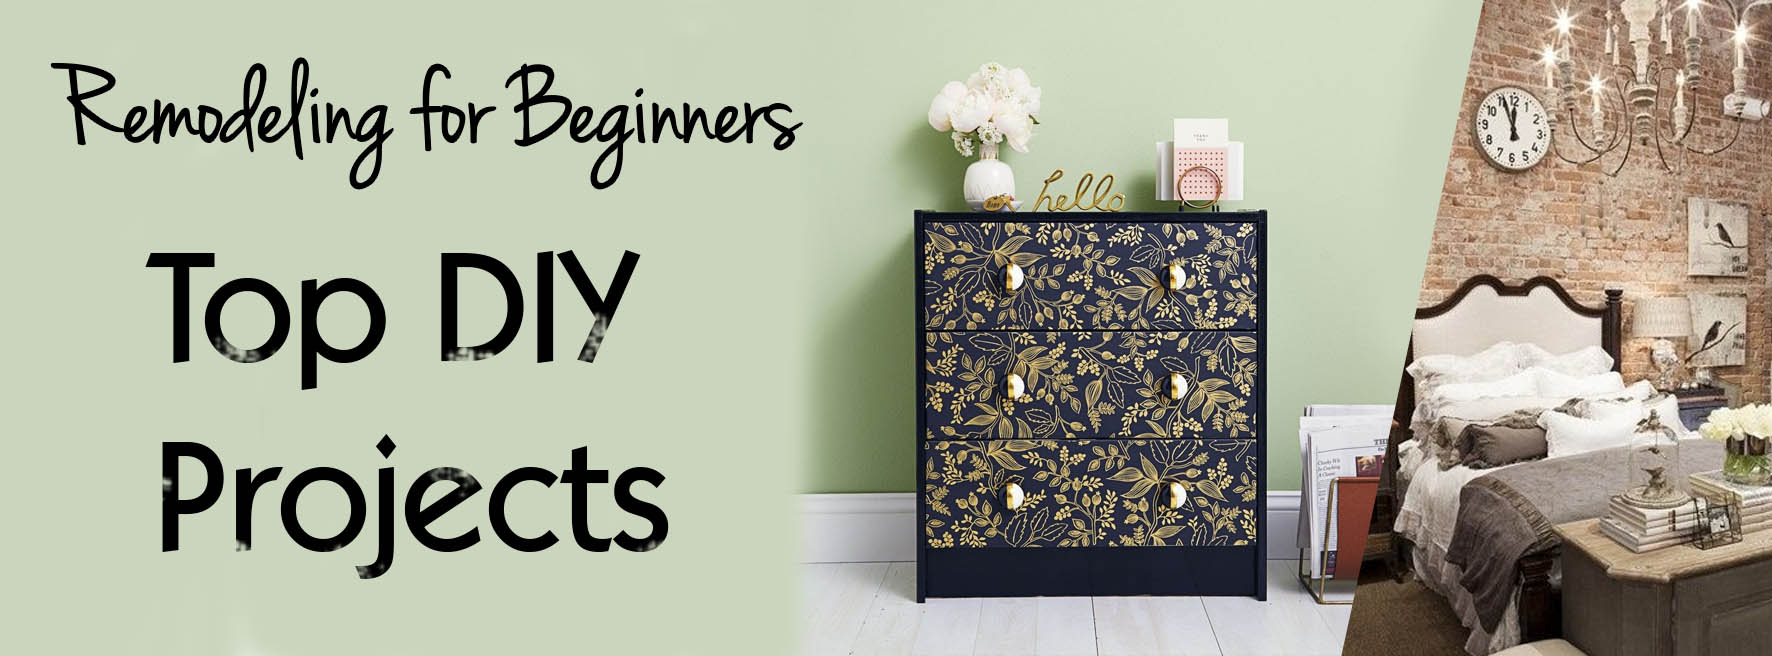 Residential remodeling for beginners: Top DIY projects that you should consider